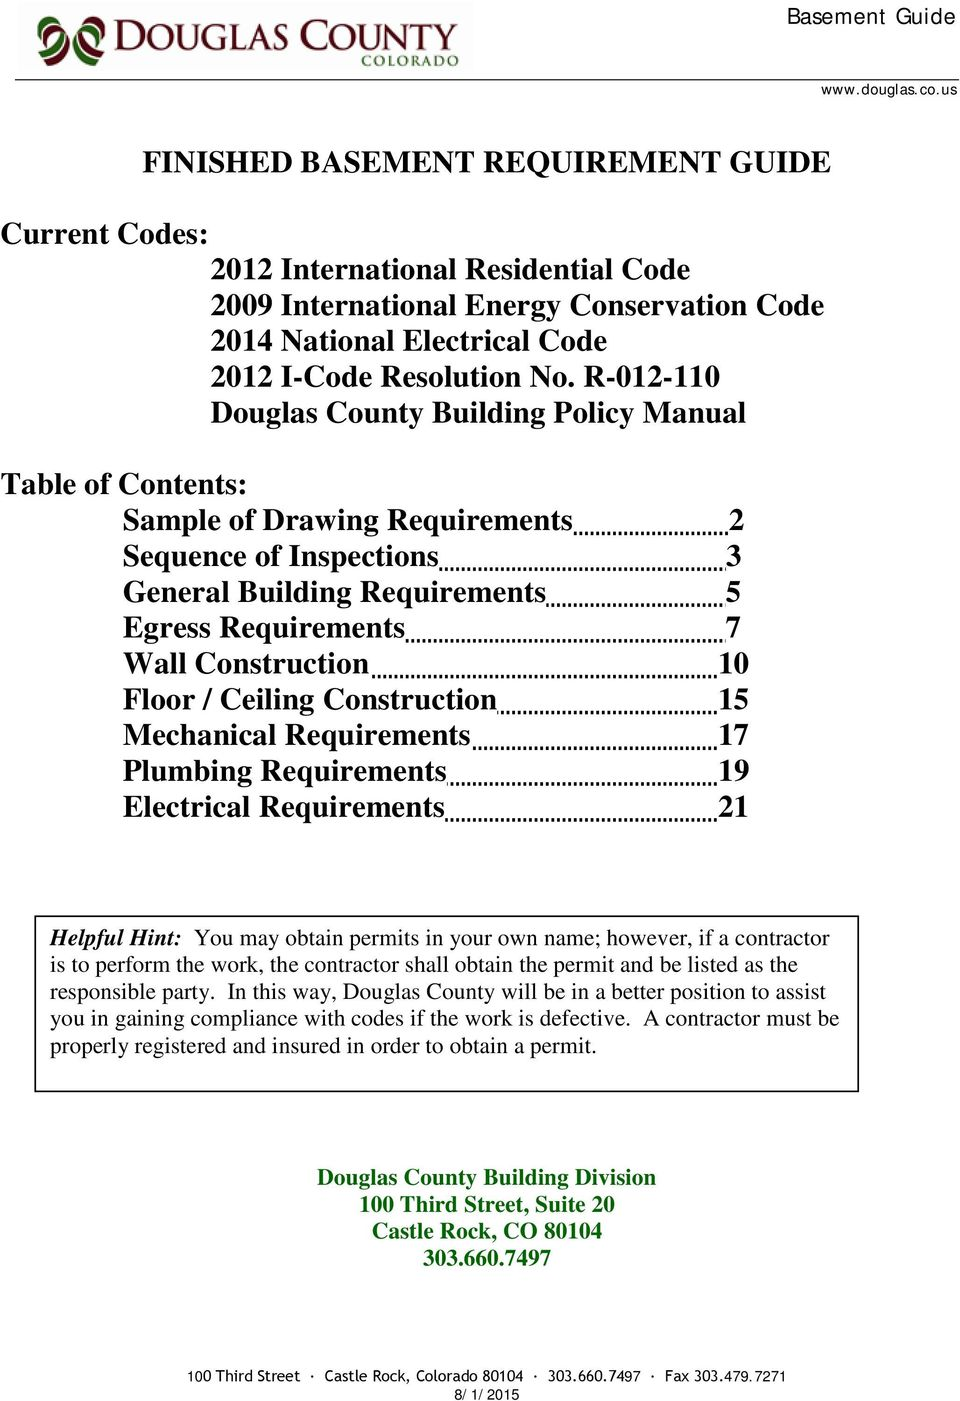 Finished Basement Requirement Guide Pdf Wiring Code For Unfinished R 012 110 Douglas County Building Policy Manual Table Of Contents Sample